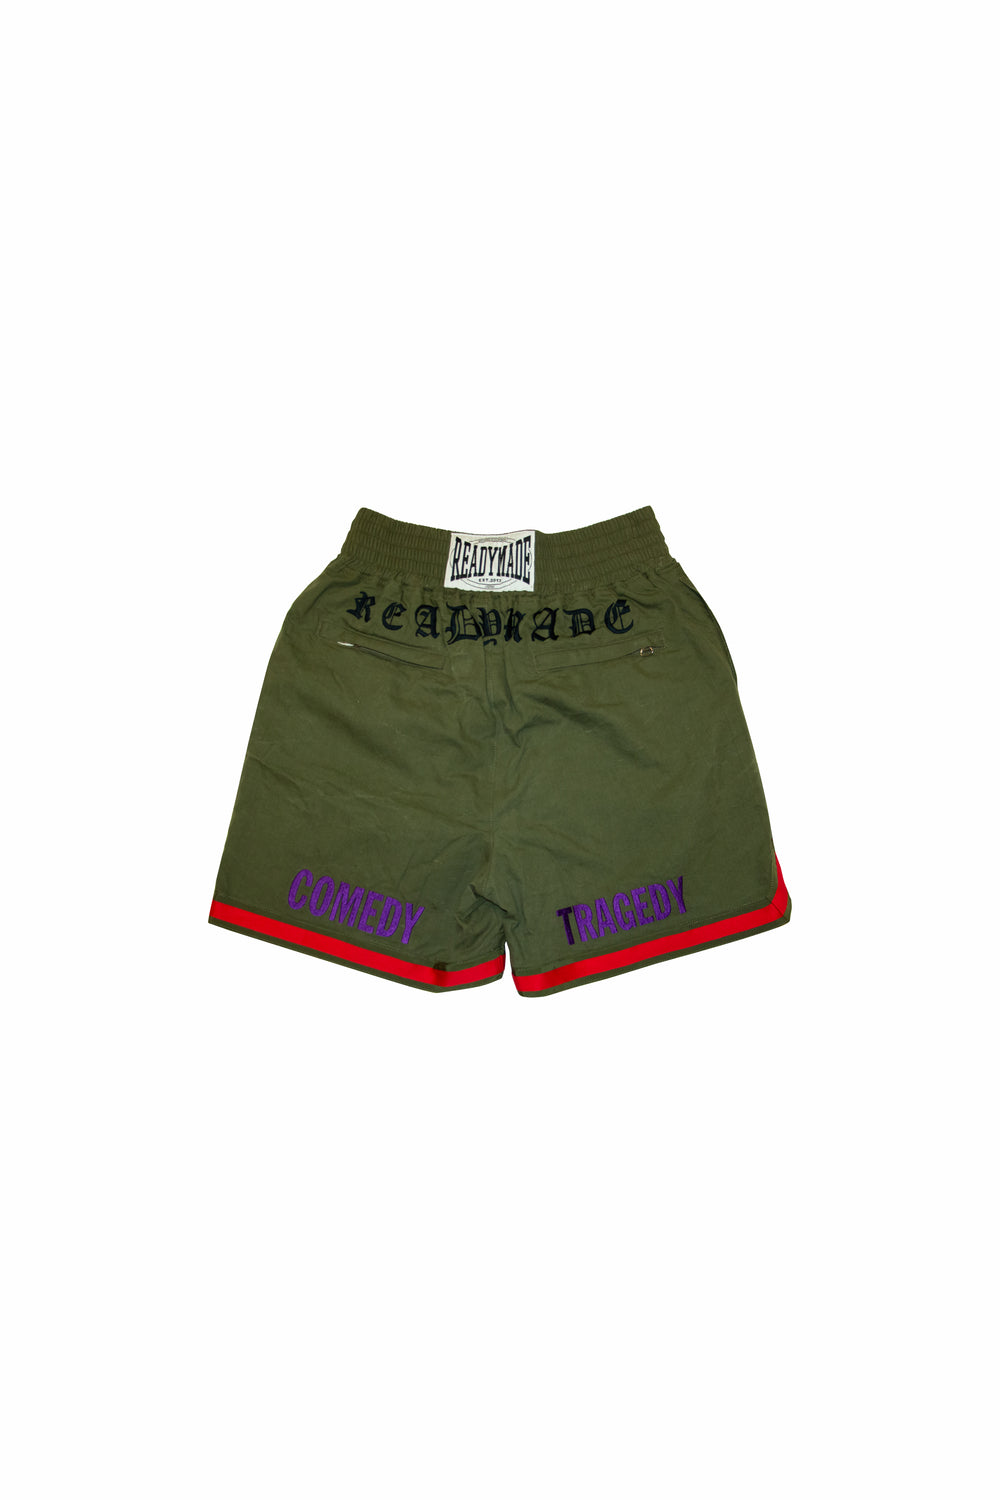 READYMADE Embroidery Boxing Shorts In Green